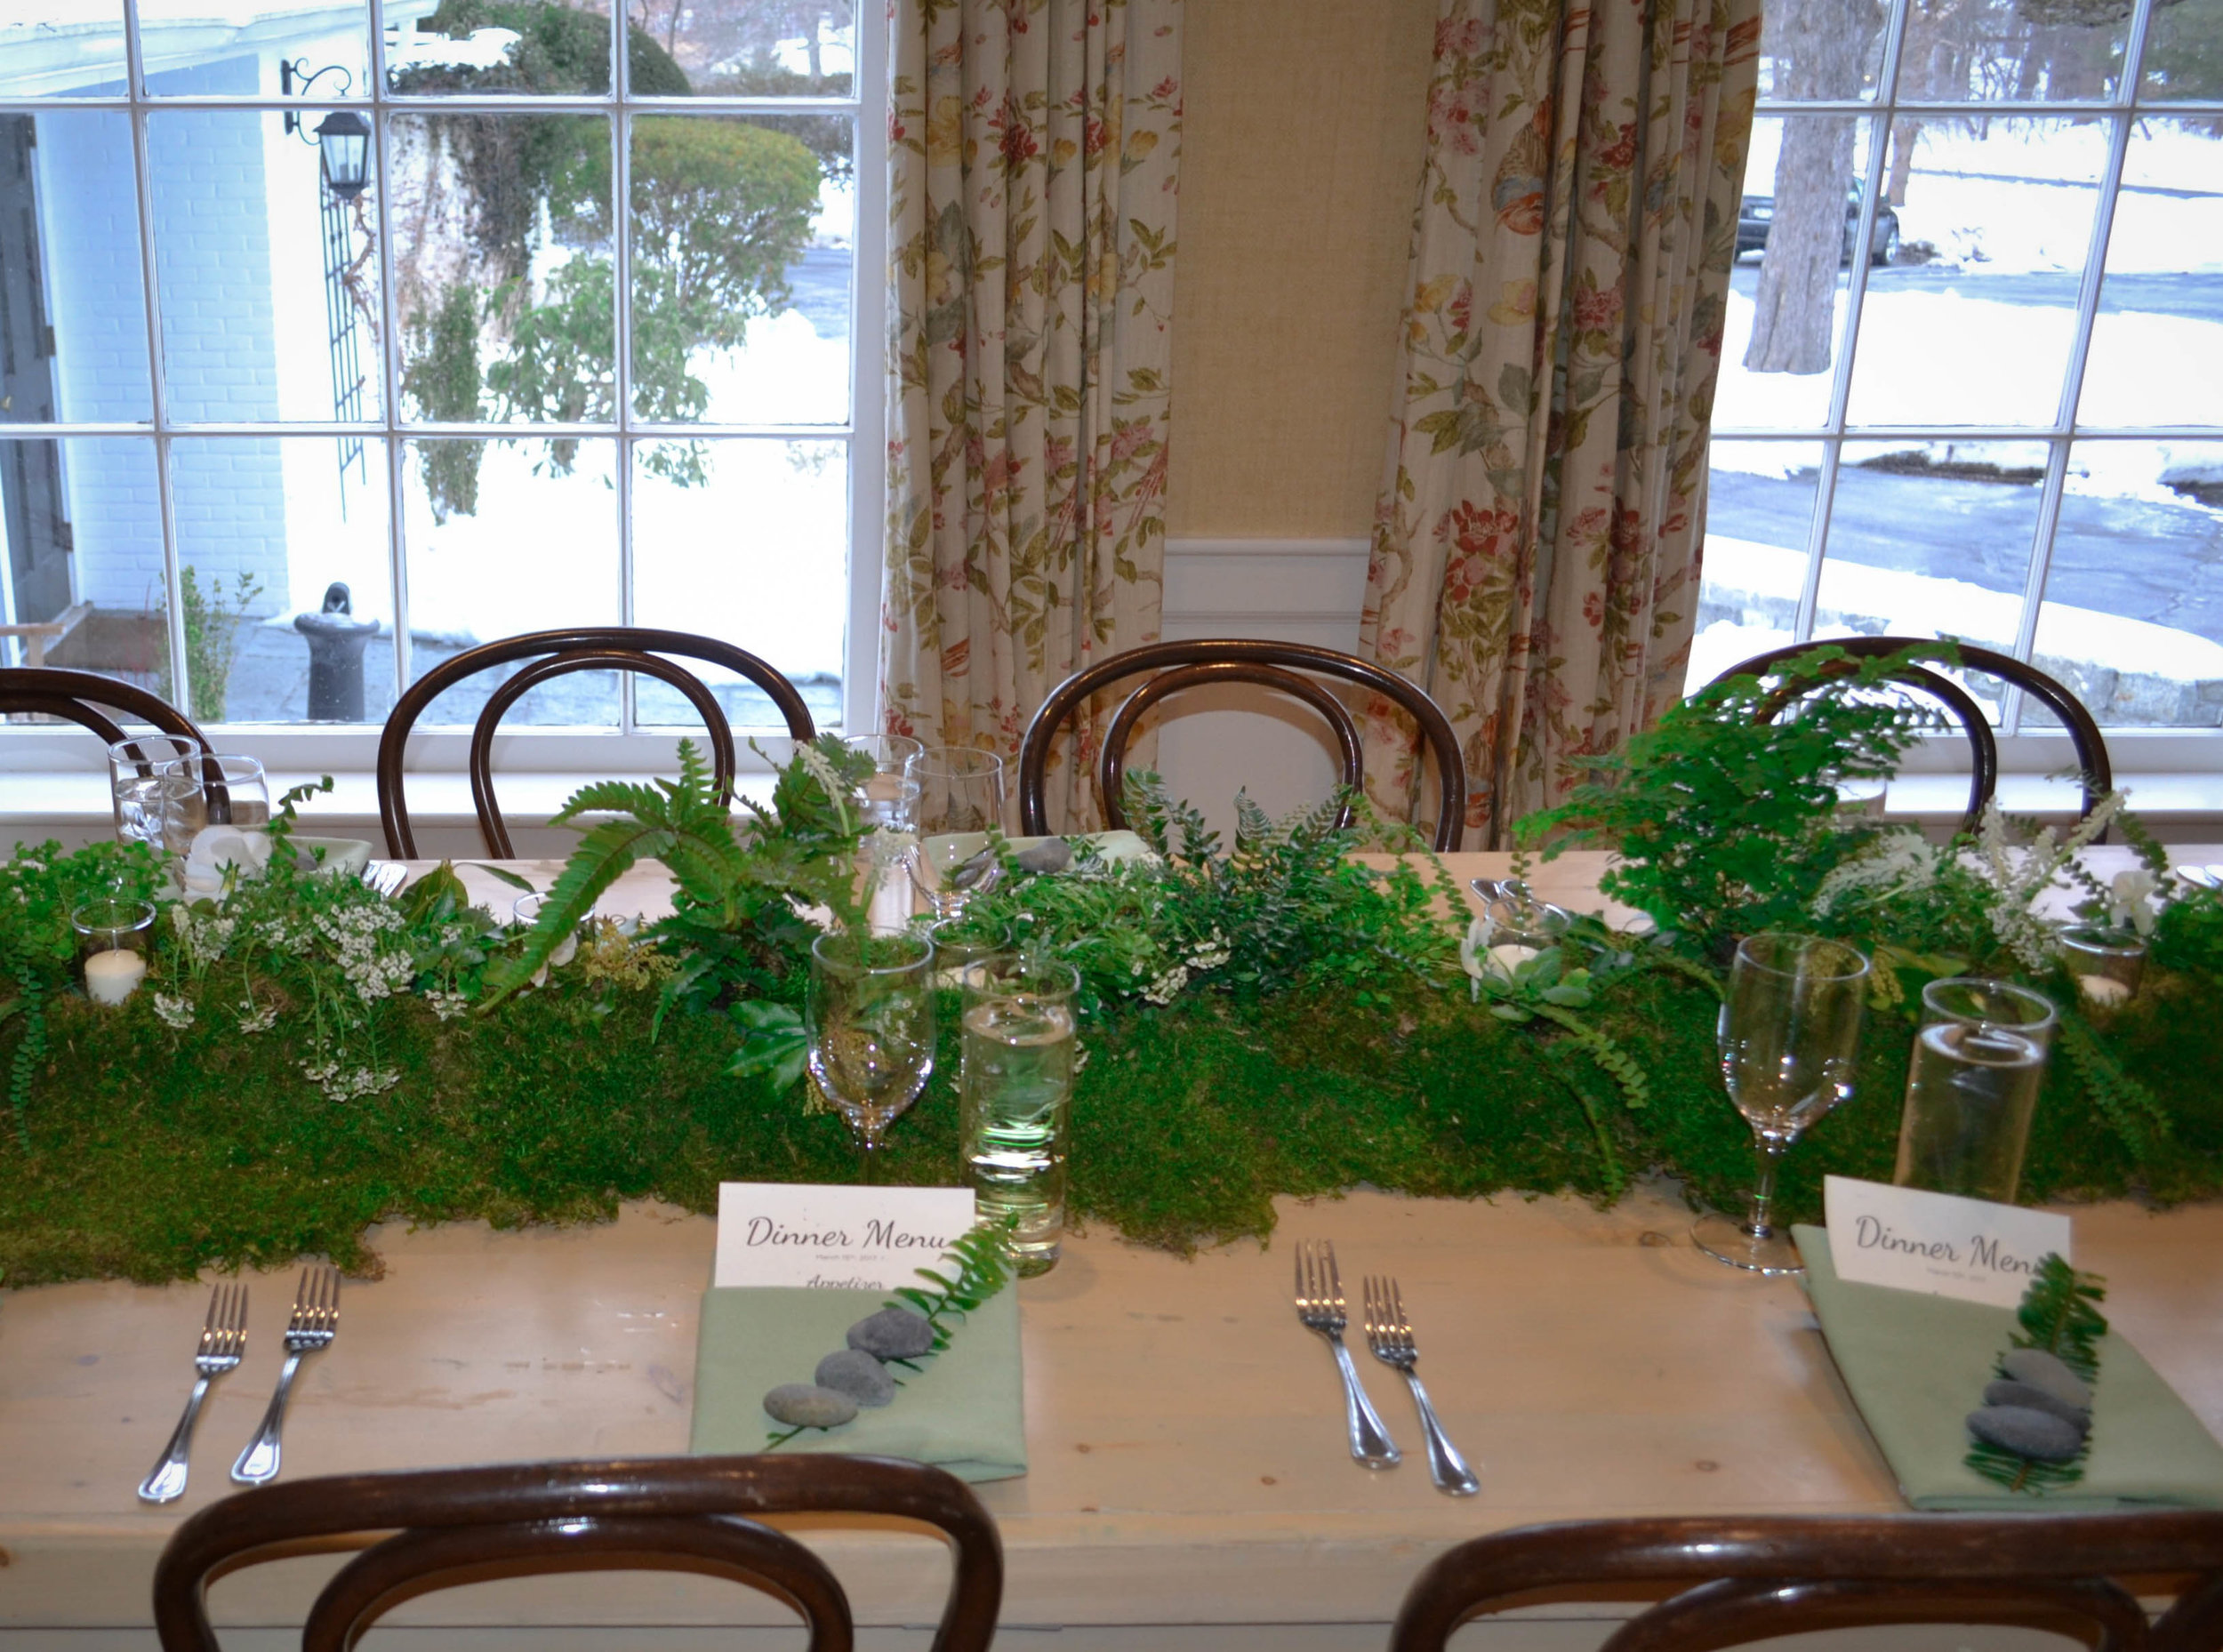 Lush 6' moss table runners were created and topped with votives,several fern varieties, clover, foraged andromeda and seasonal white flowers such as muscari, alyssum and pansies